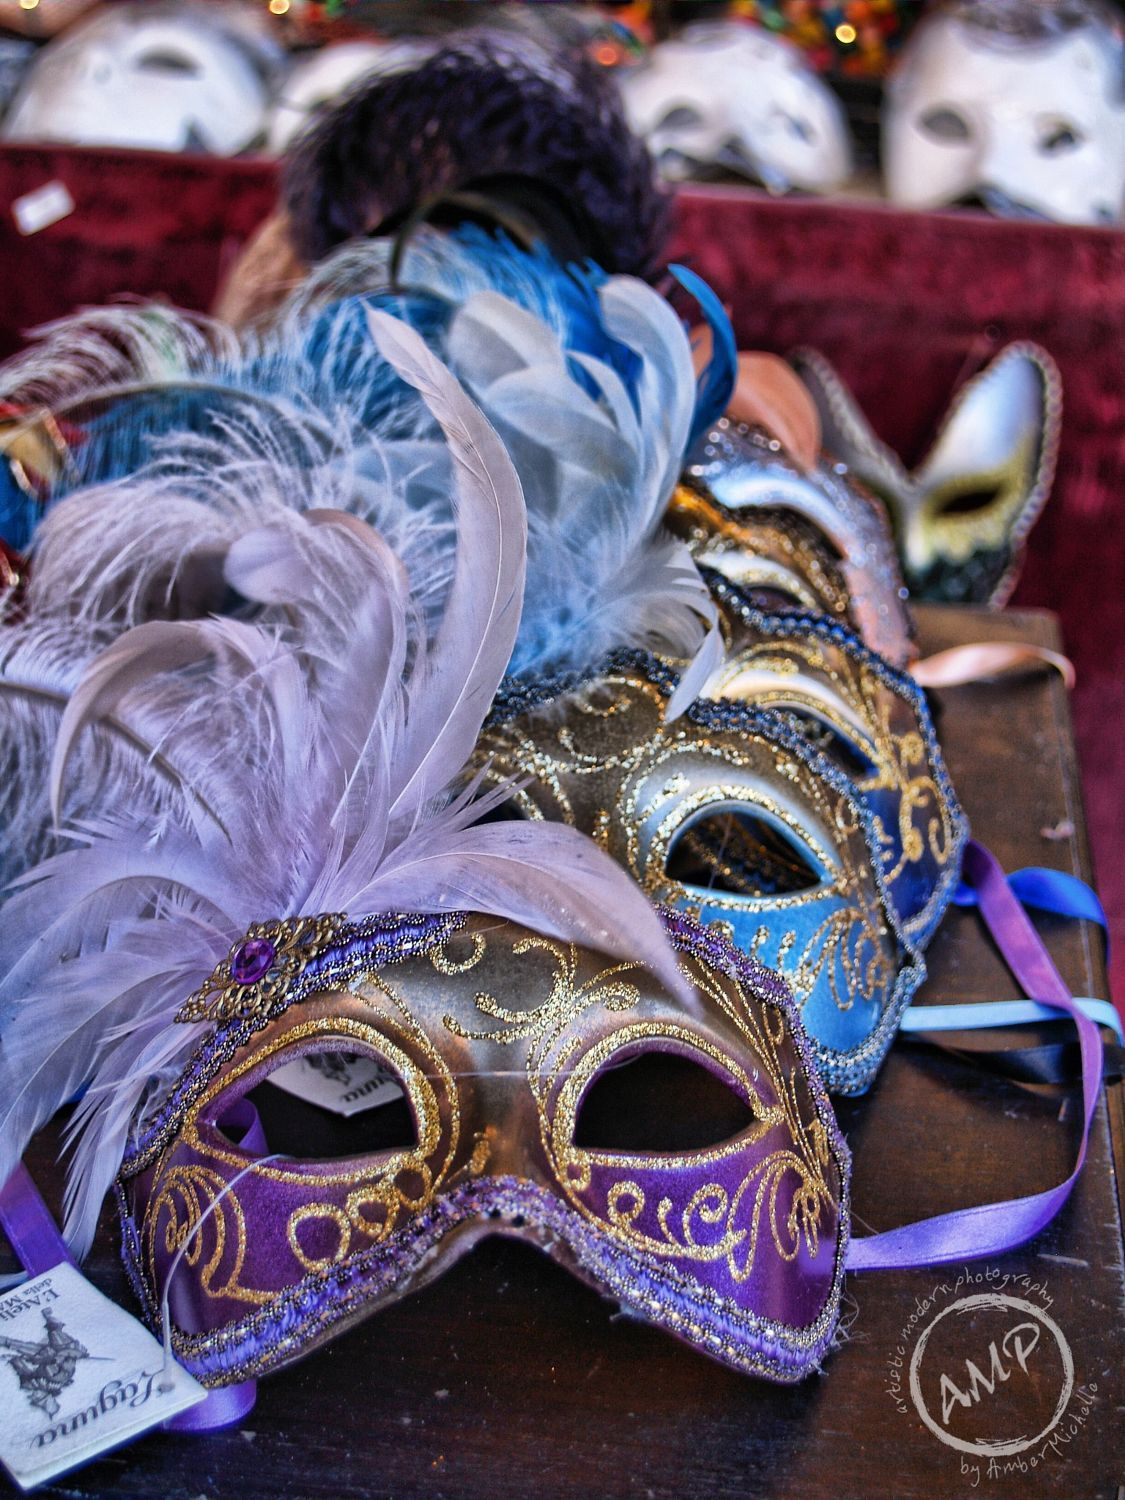 Masquerade by Amber Olsen on 500px